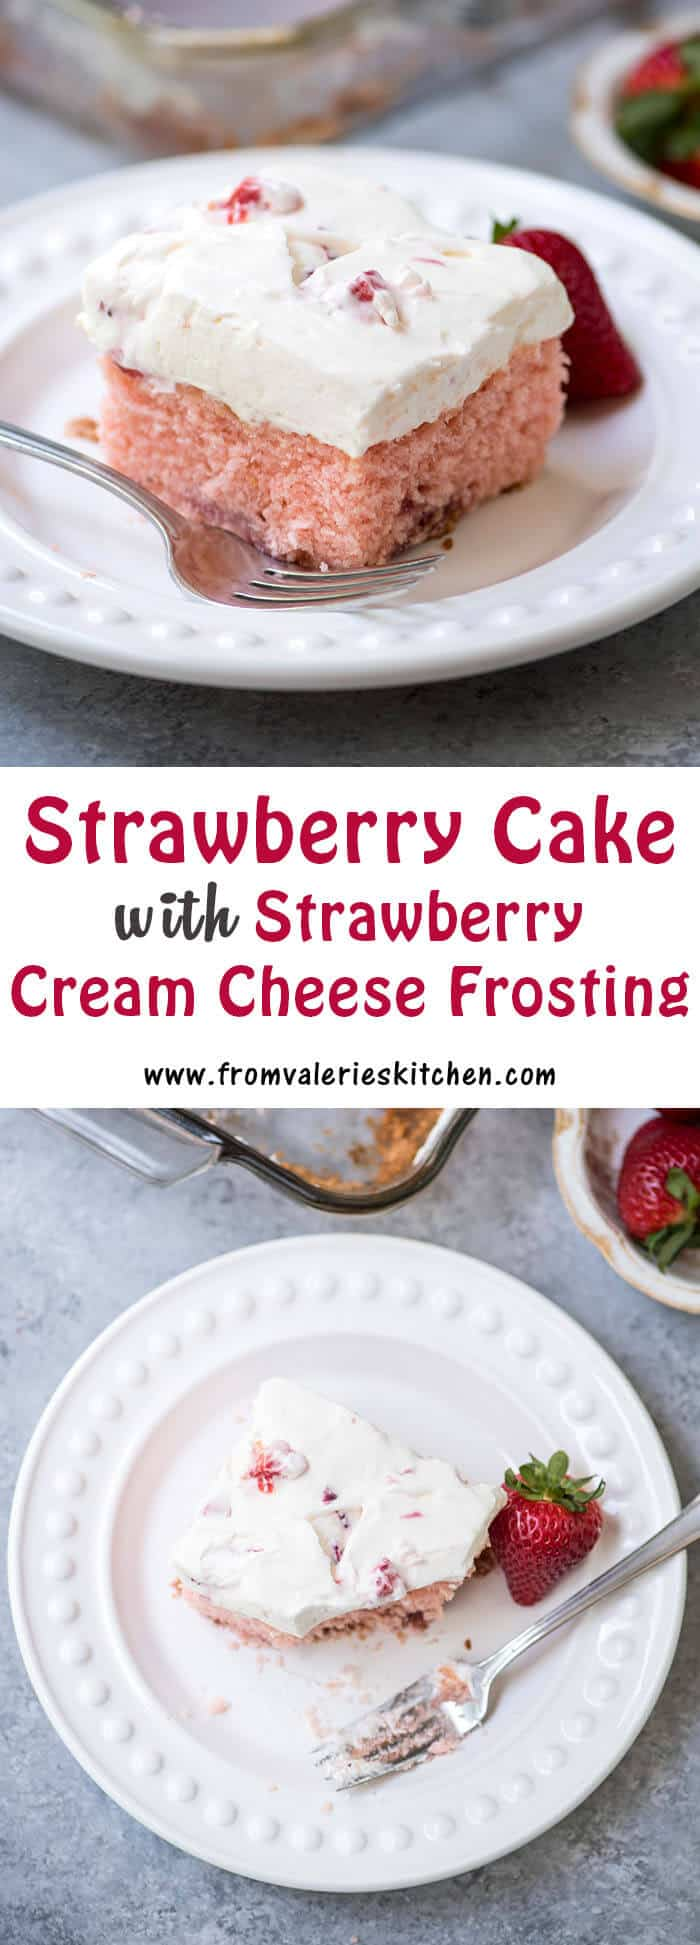 This baked from scratch Strawberry Cake with Strawberry Cream Cheese Frosting has a tender texture and luscious strawberry studded frosting!